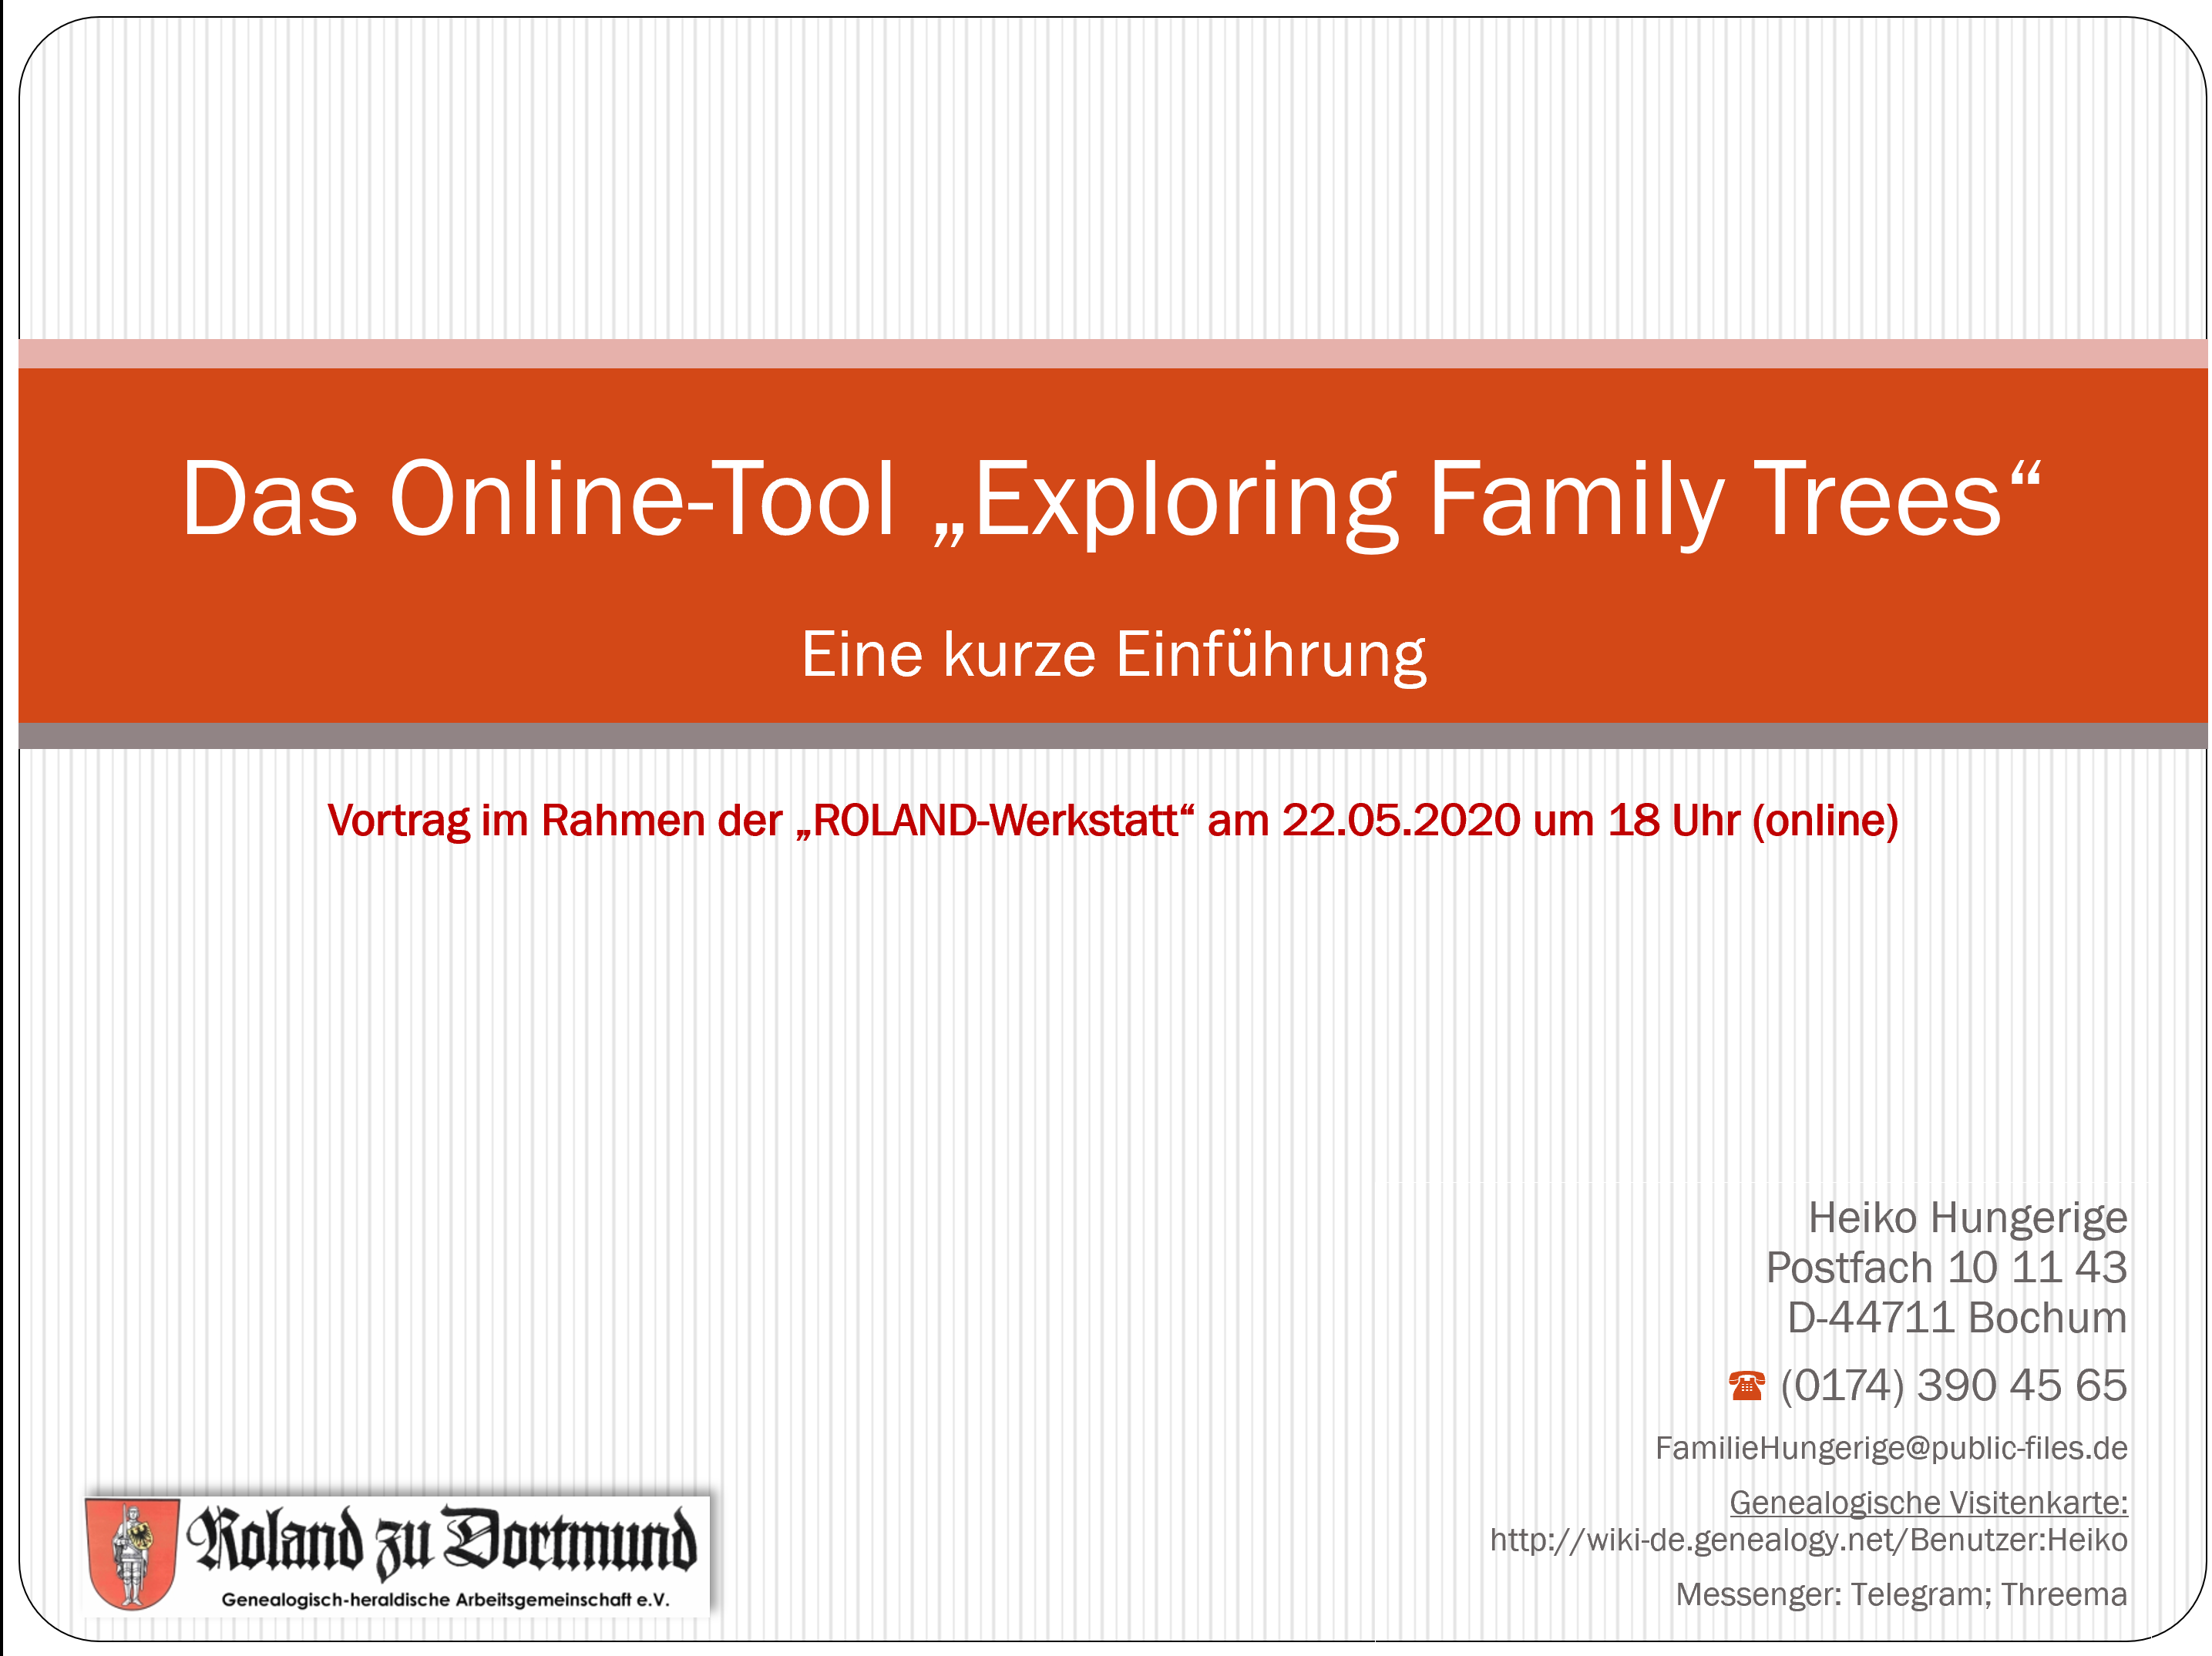 Hungerige (2020), Das Online-Tool 'Exploring Family Trees'